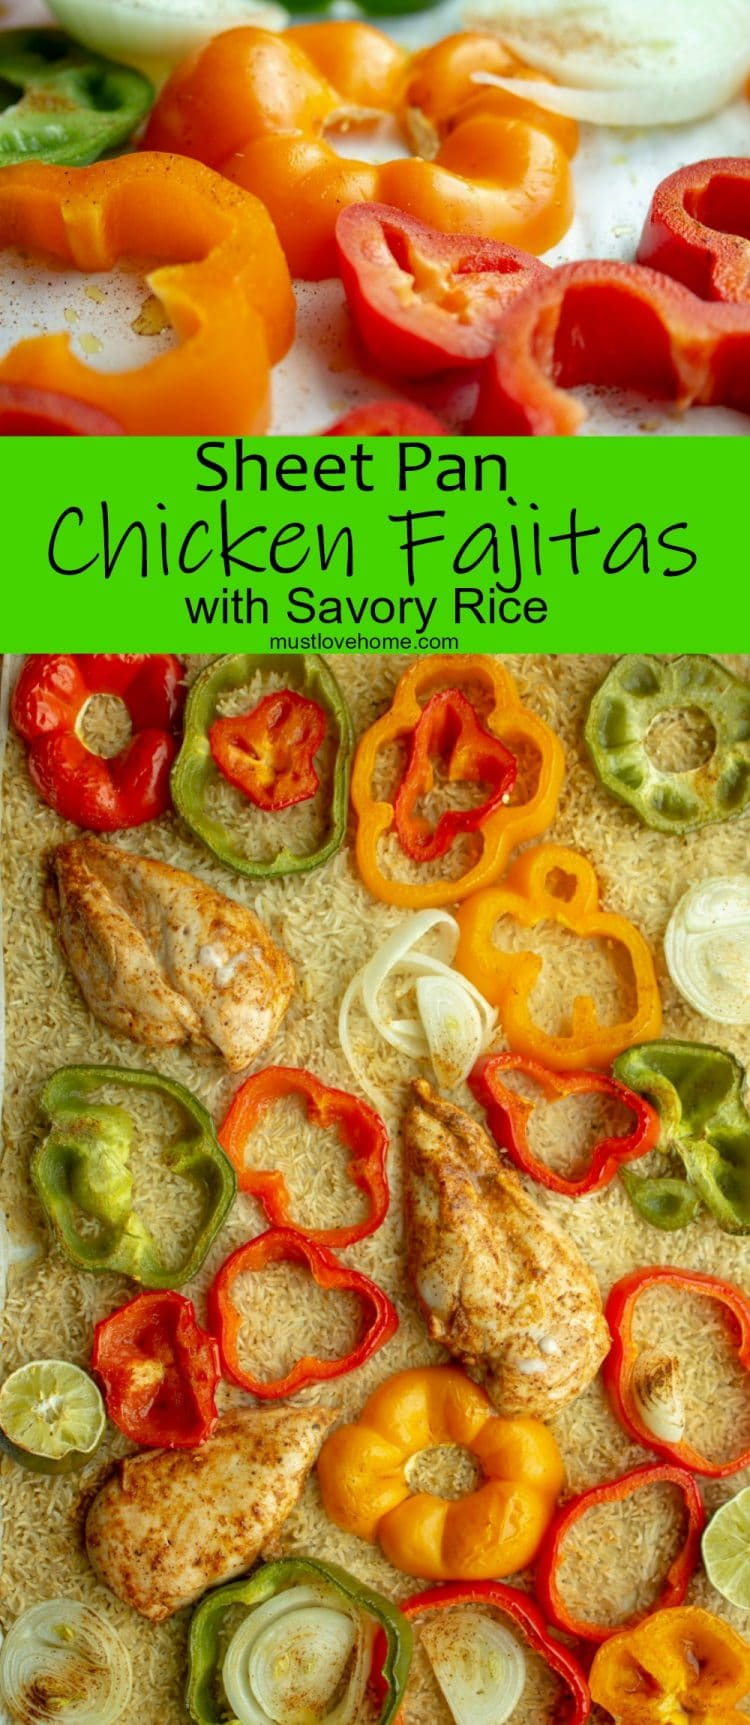 All you need is one pan to bake zesty sheet pan chicken Fajitas with savory rice as a side dish! A quick and easy complete meal with super easy clean up!